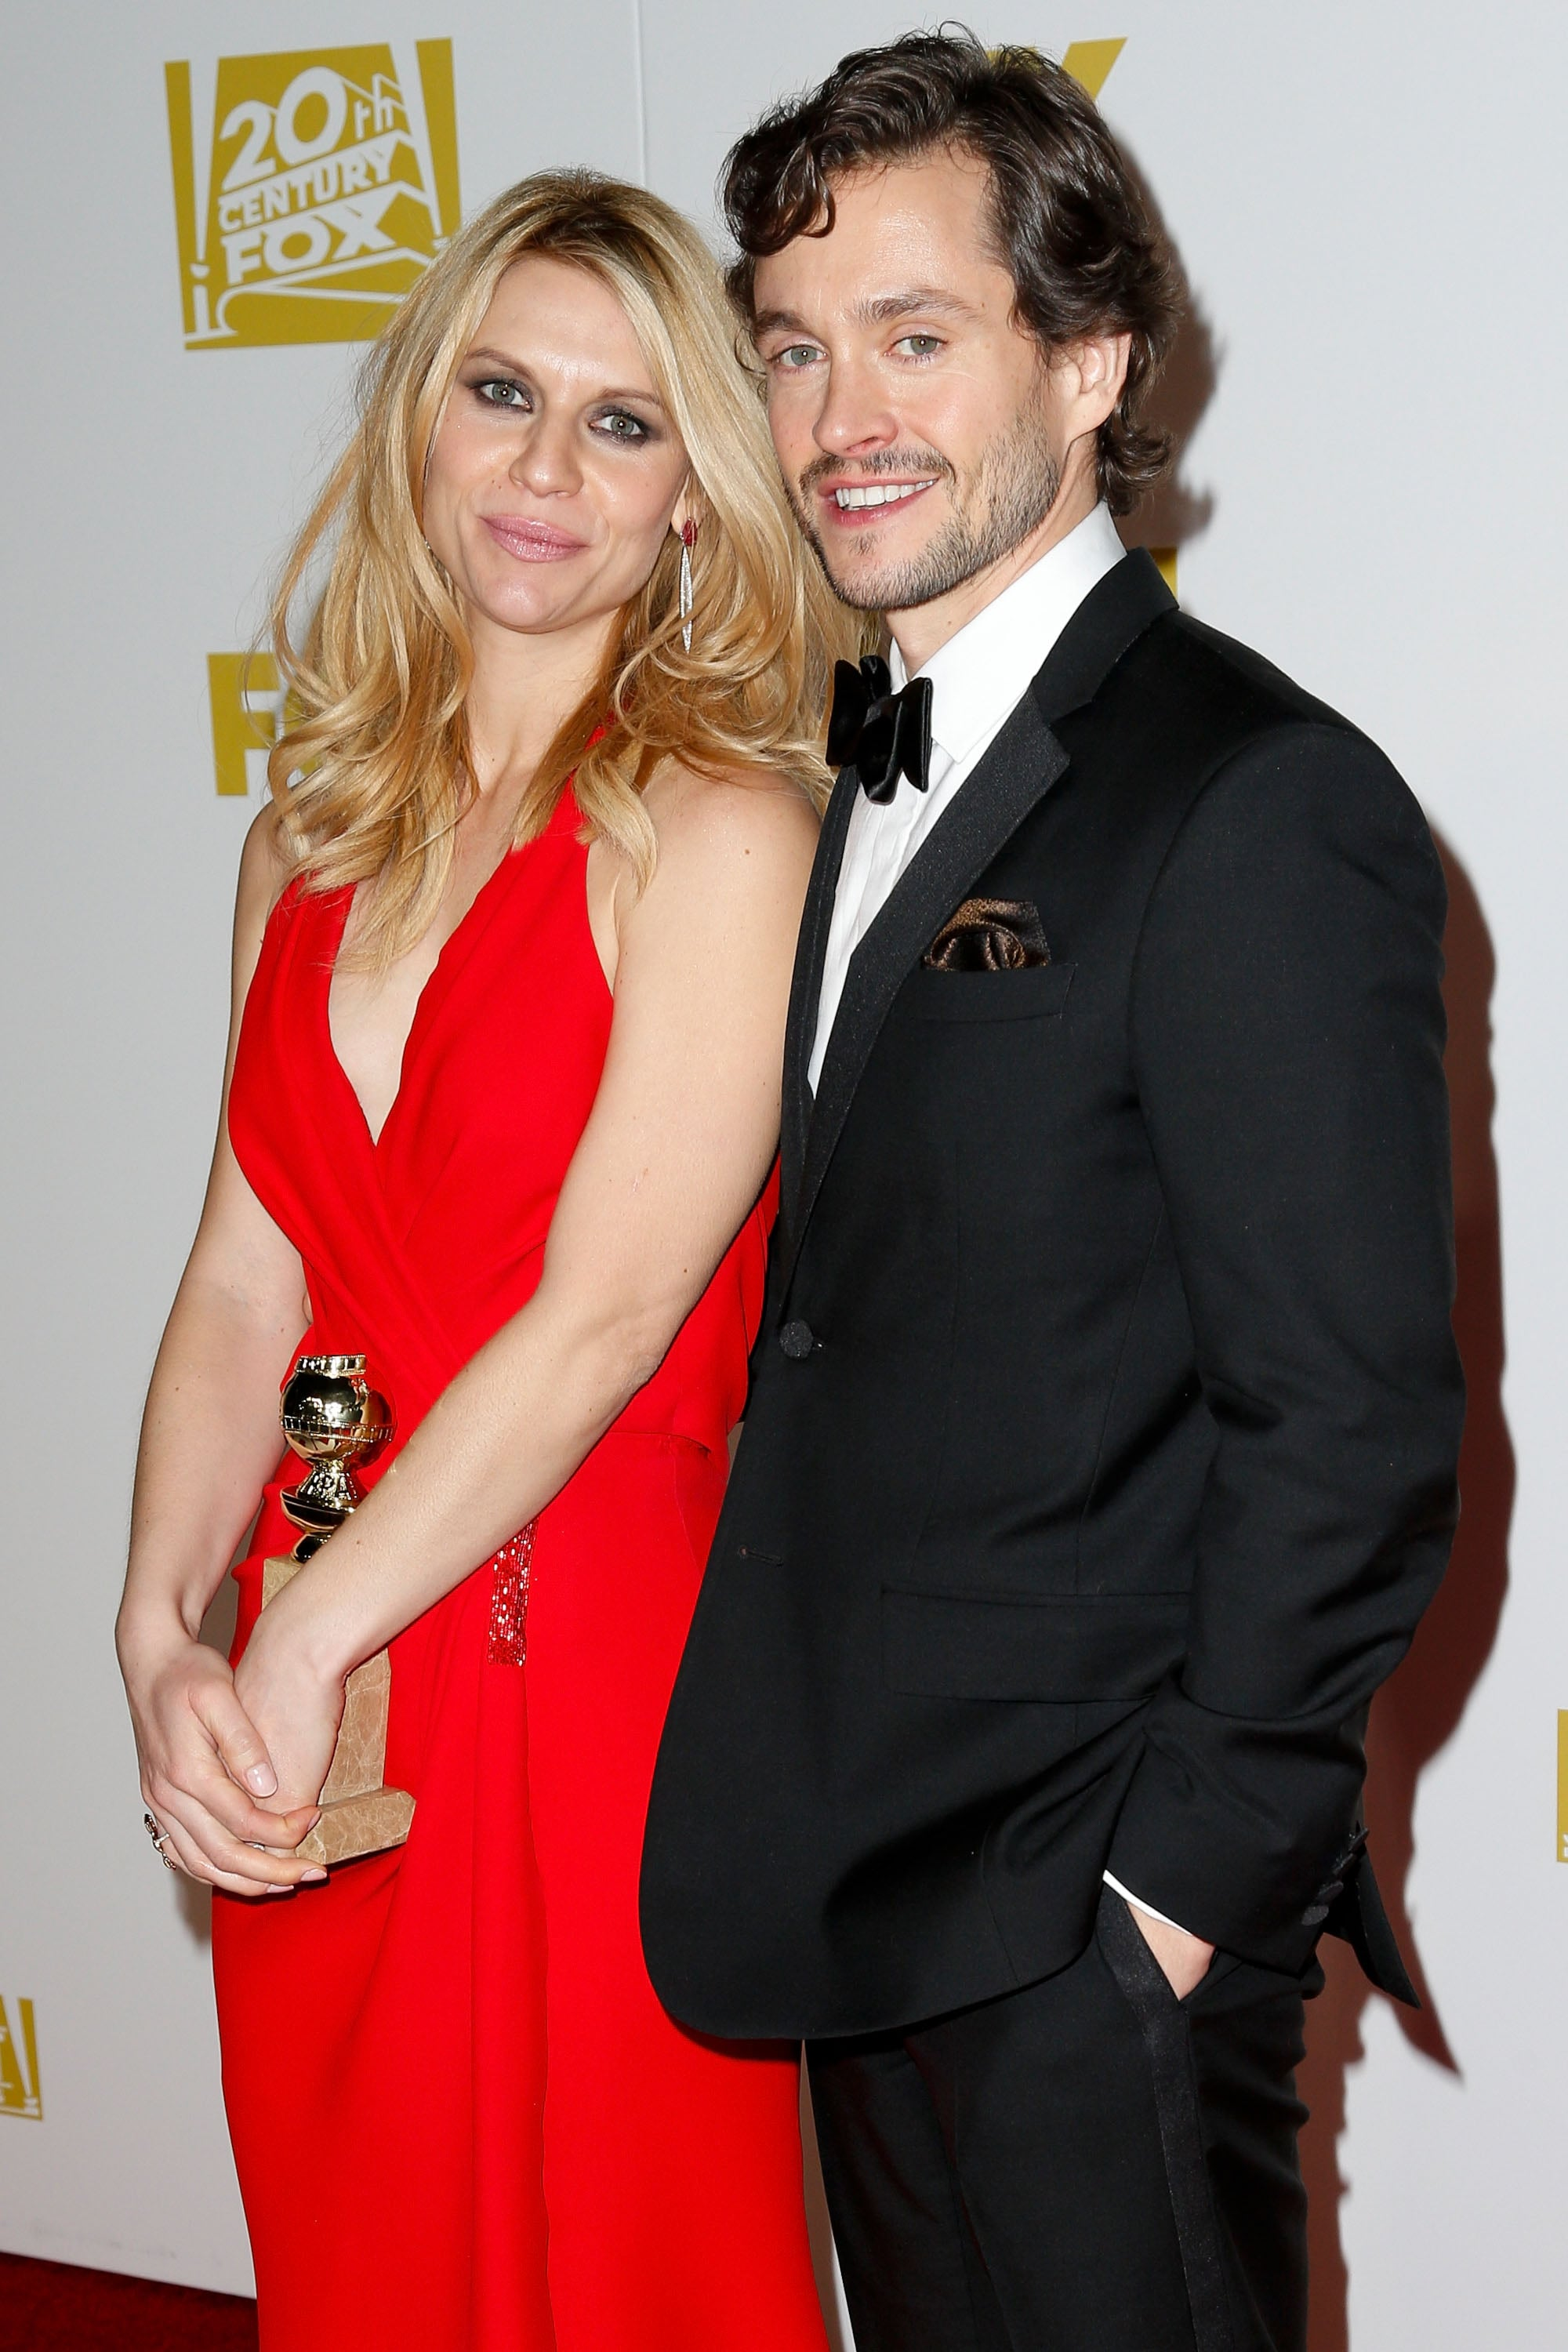 Claire Danes and Hugh Dancy celebrated after the 2013 Golden Globes.